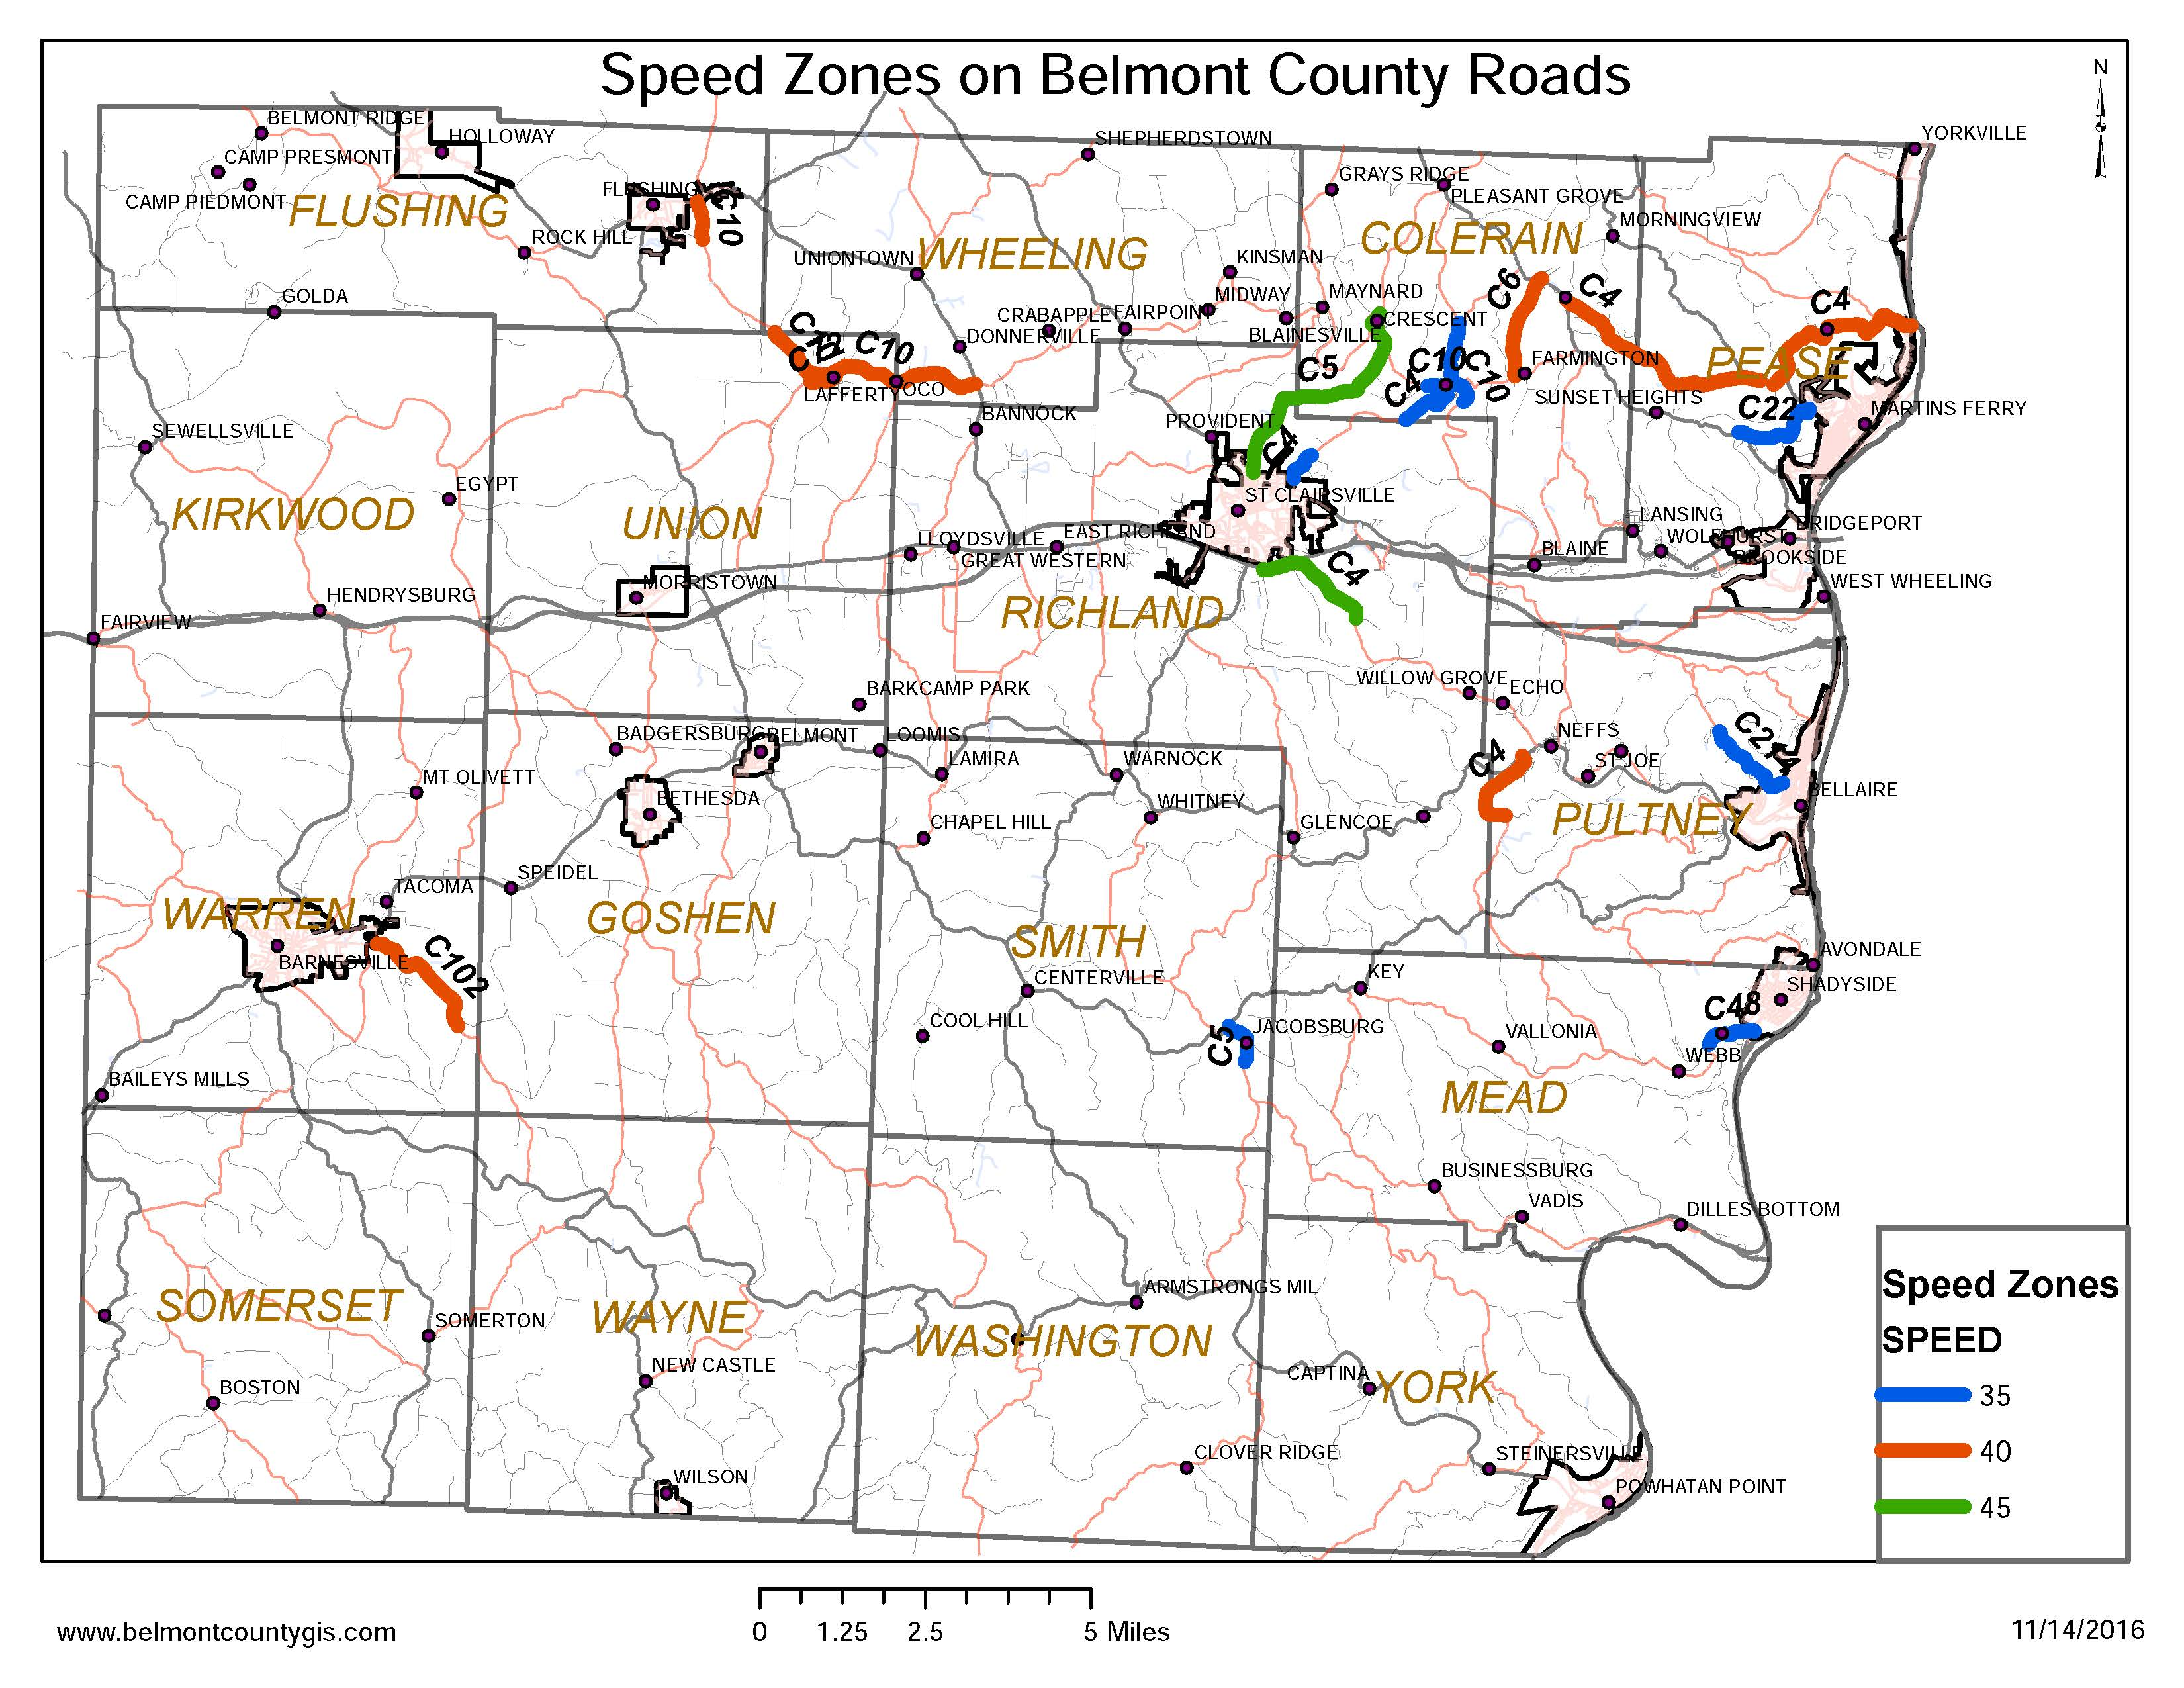 Belmont County Engineer - Ohio road map